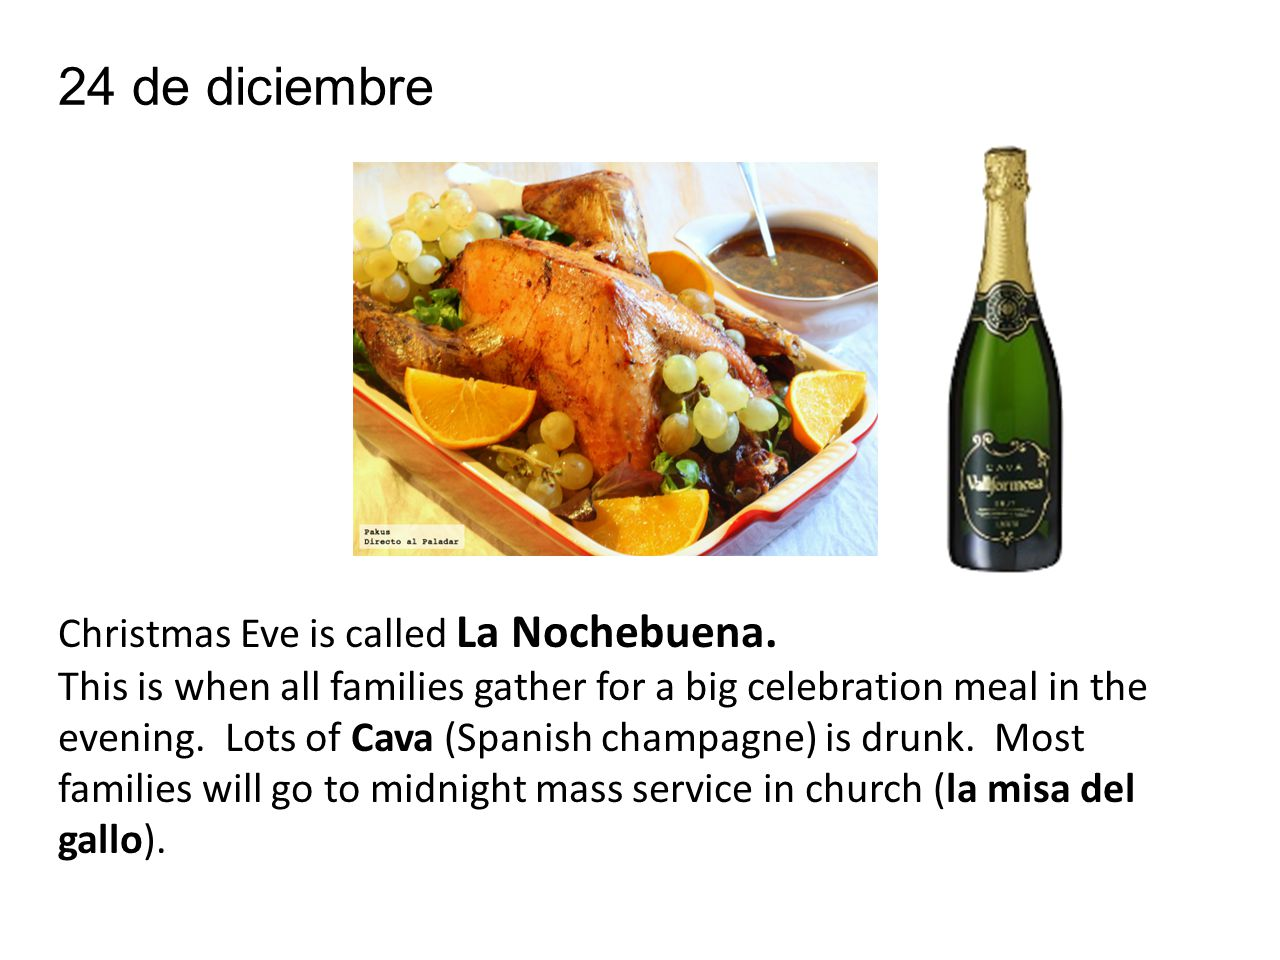 24 de diciembre Christmas Eve is called La Nochebuena.